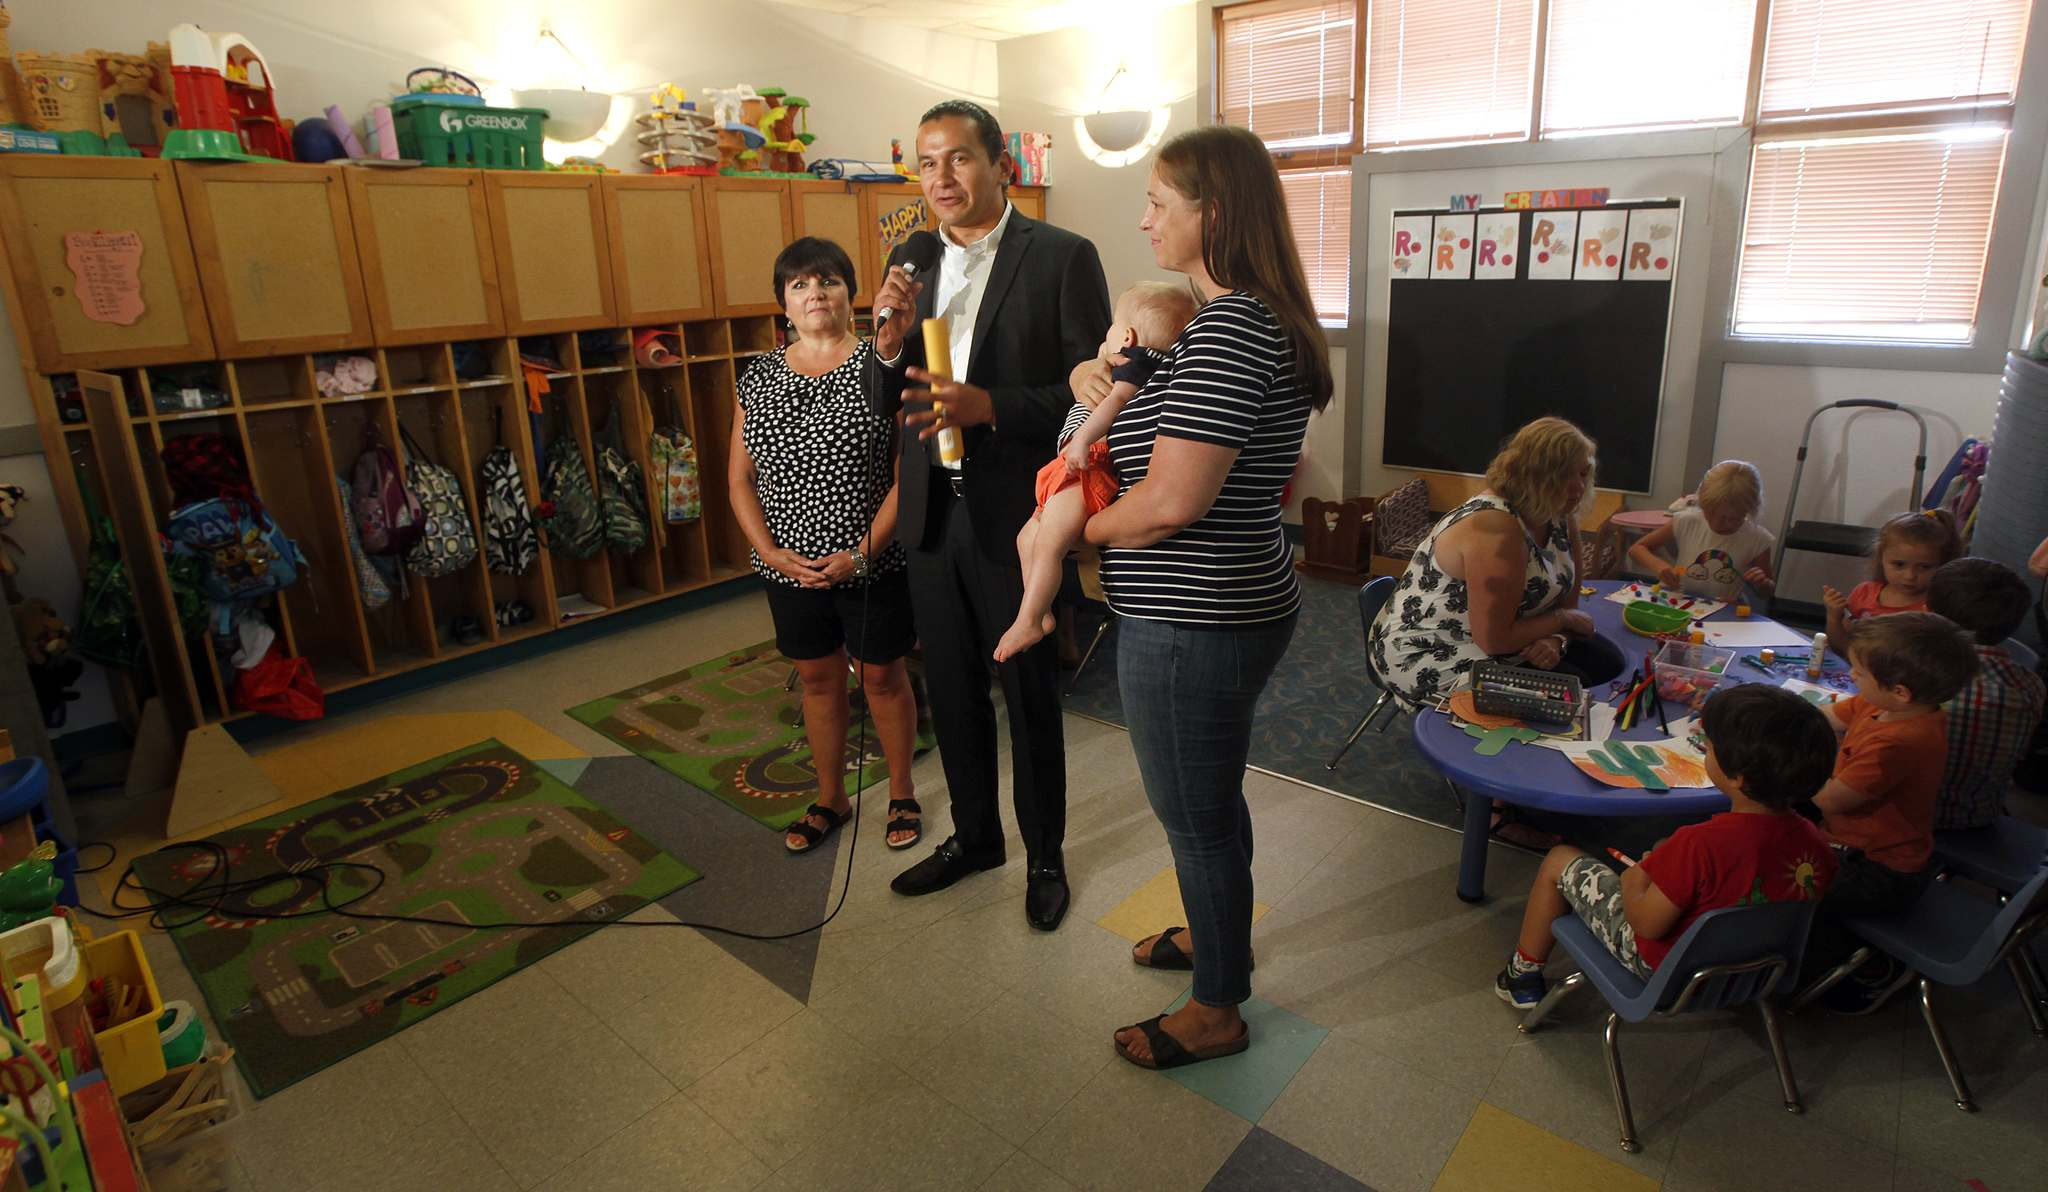 PHIL HOSSACK / WINNIPEG FREE PRESS </p><p>NDP Leader Wab Kinew announced on Tuesday a pledge to freeze funding on not-for-profit child-care programs if his party is elected.</p>